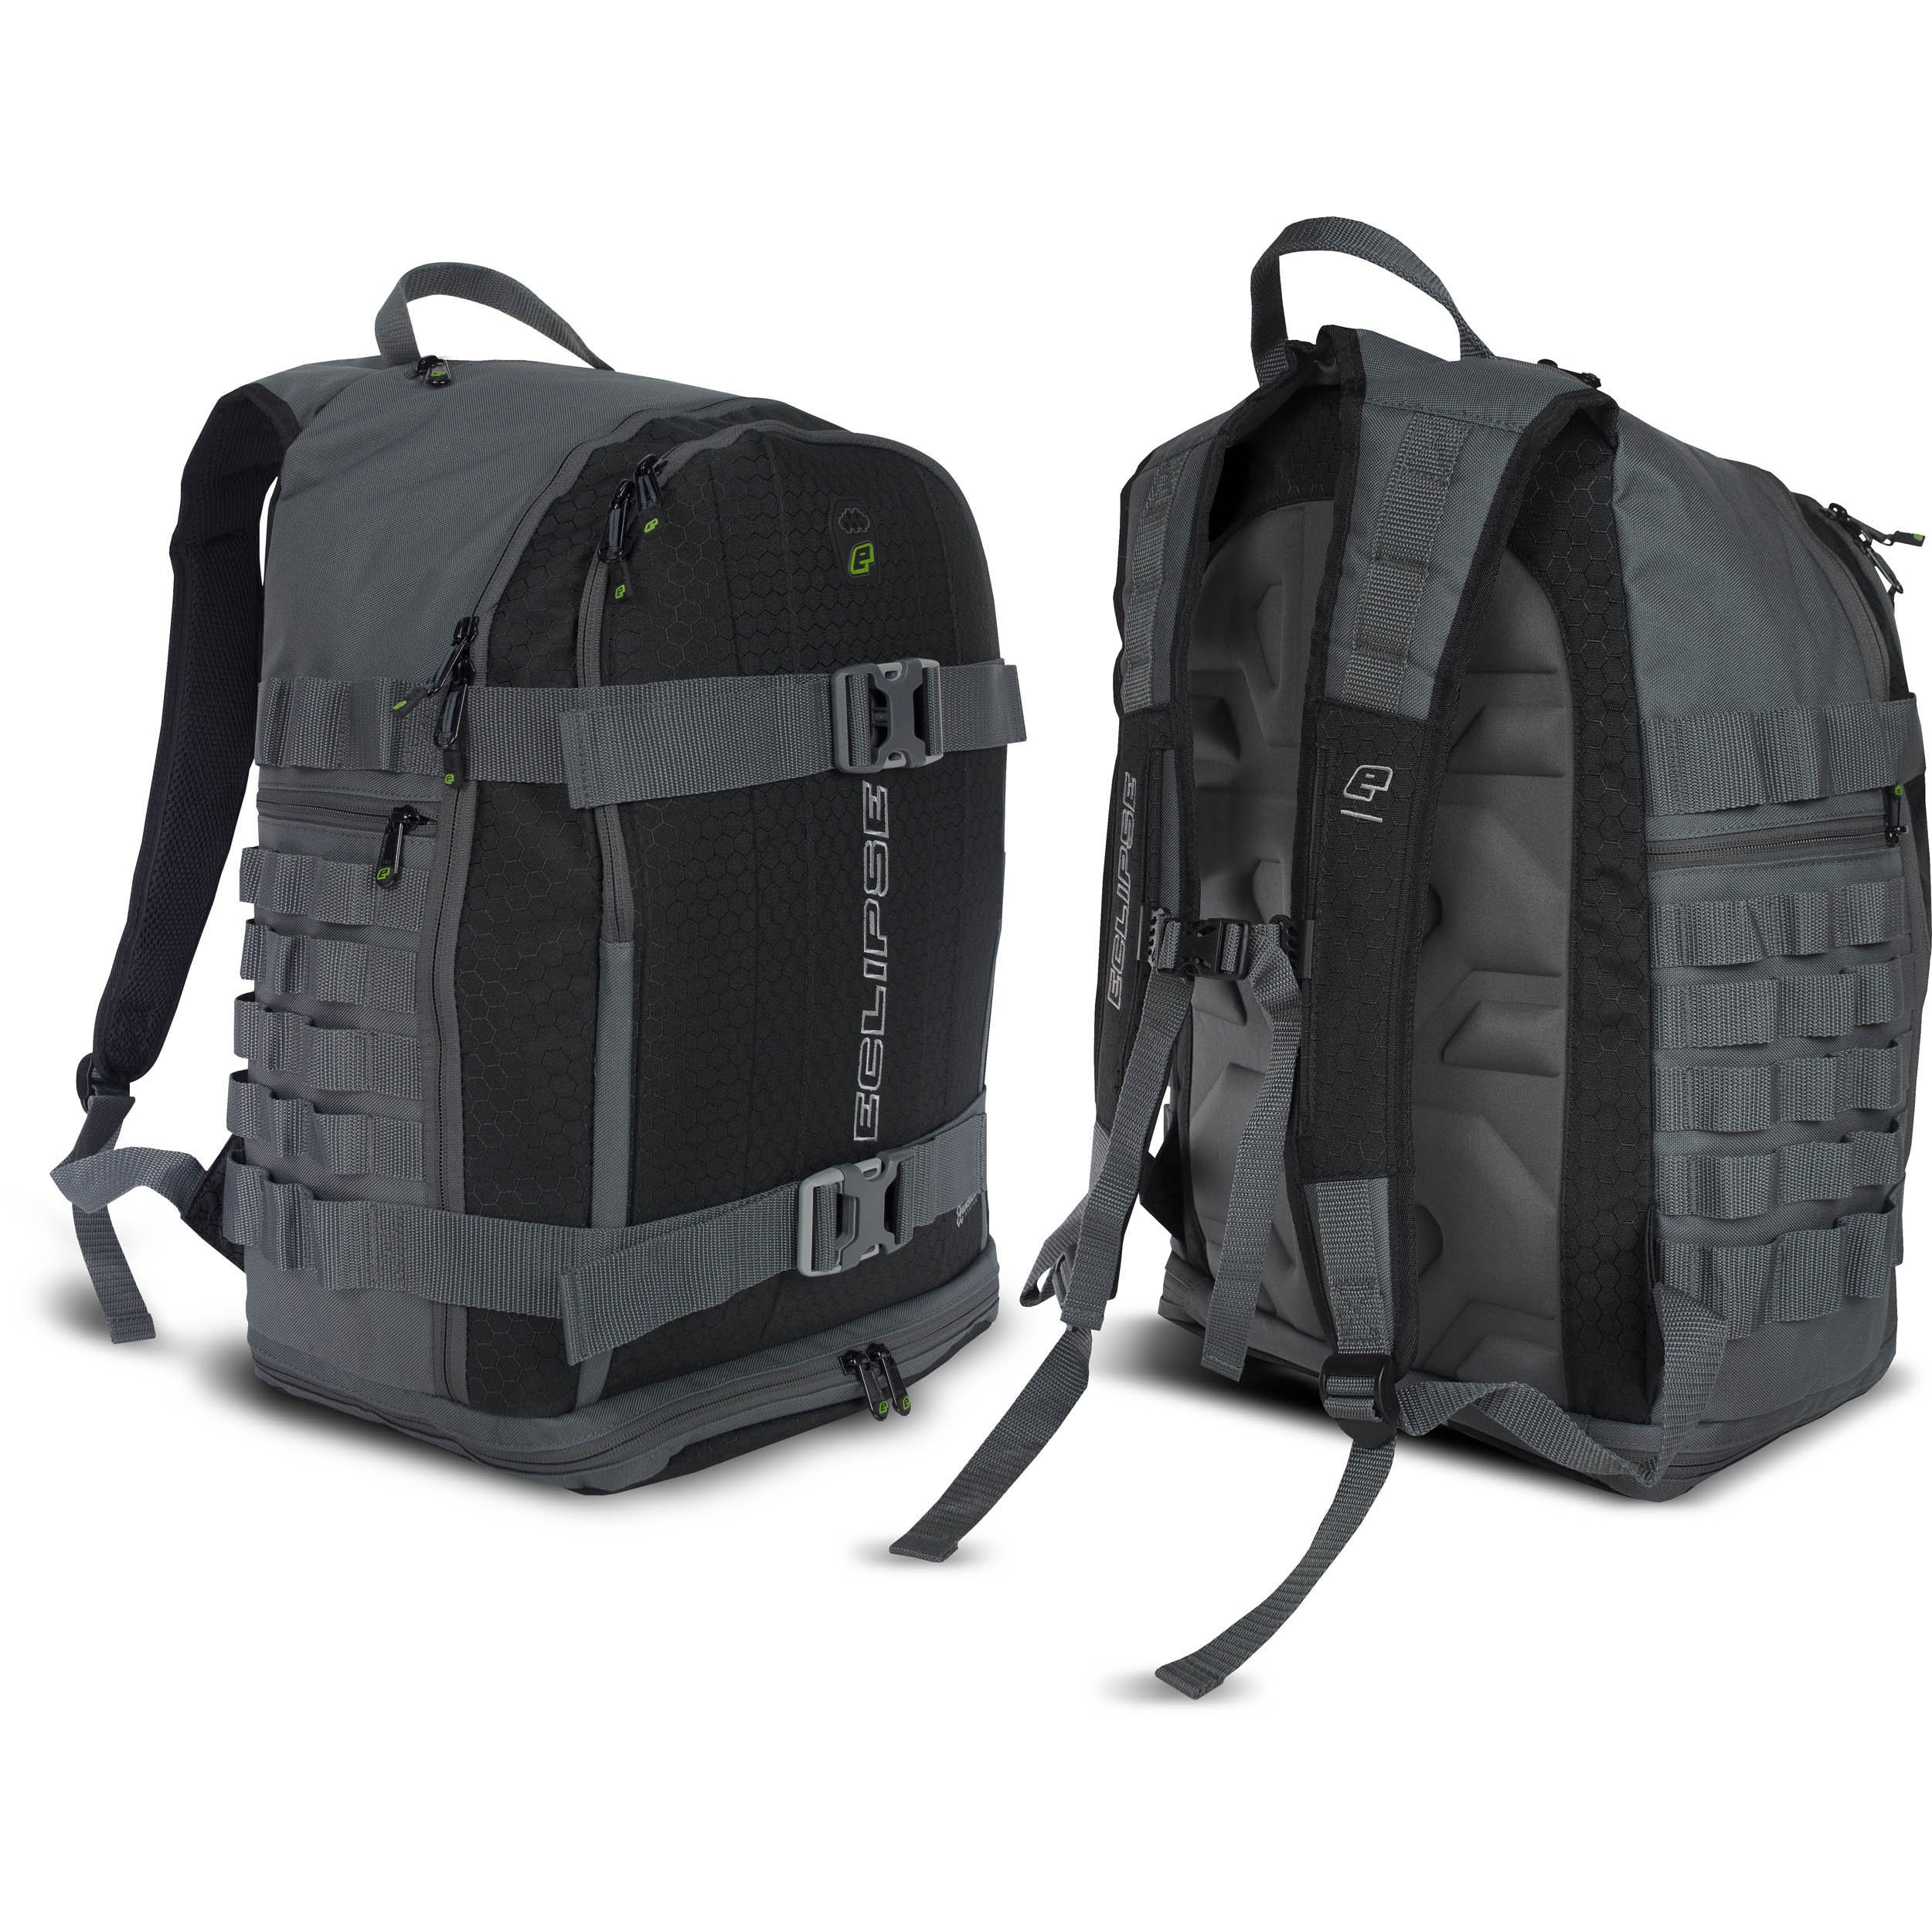 Planet Eclipse GX Paintball Gravel backpack Bag (Charcoal) by Planet Eclipse